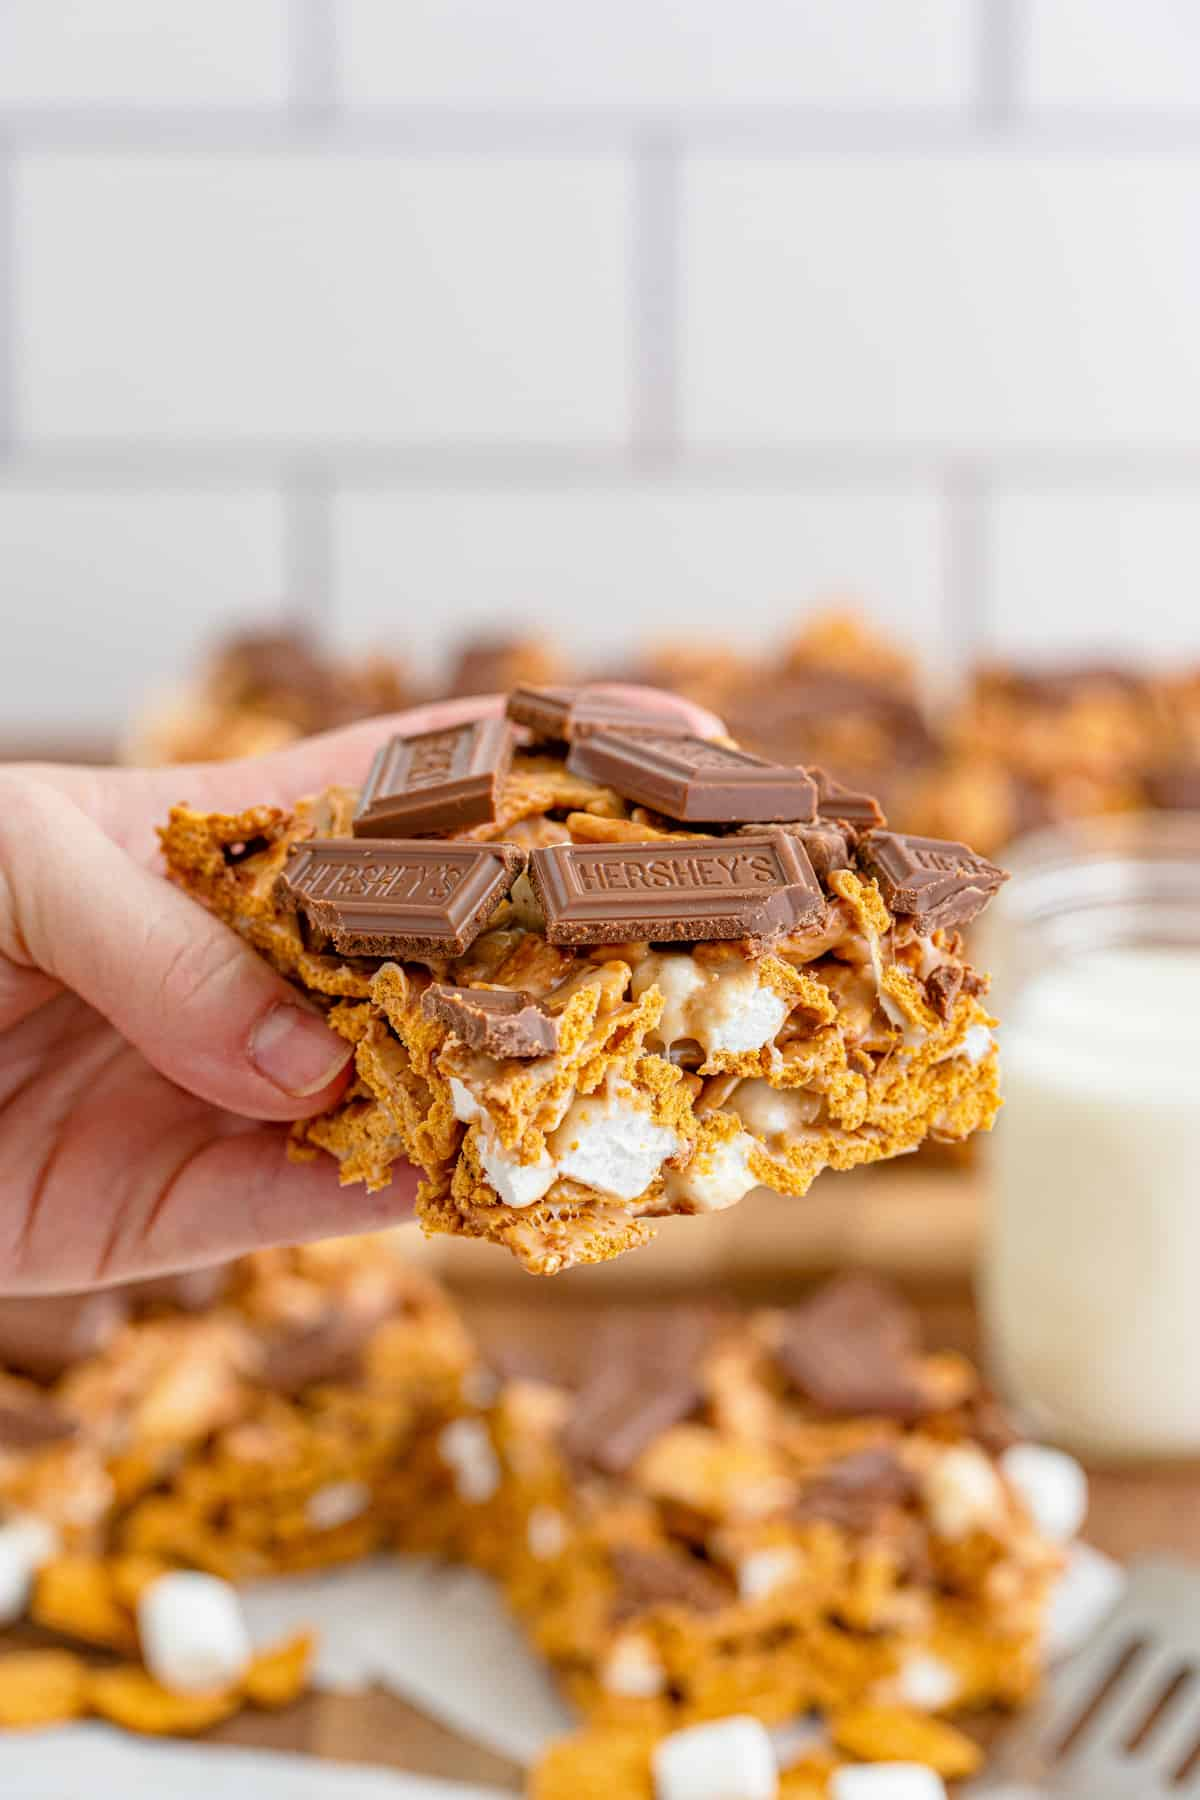 Hand holding up one S'mores Bar showing the inside and chocolate topping